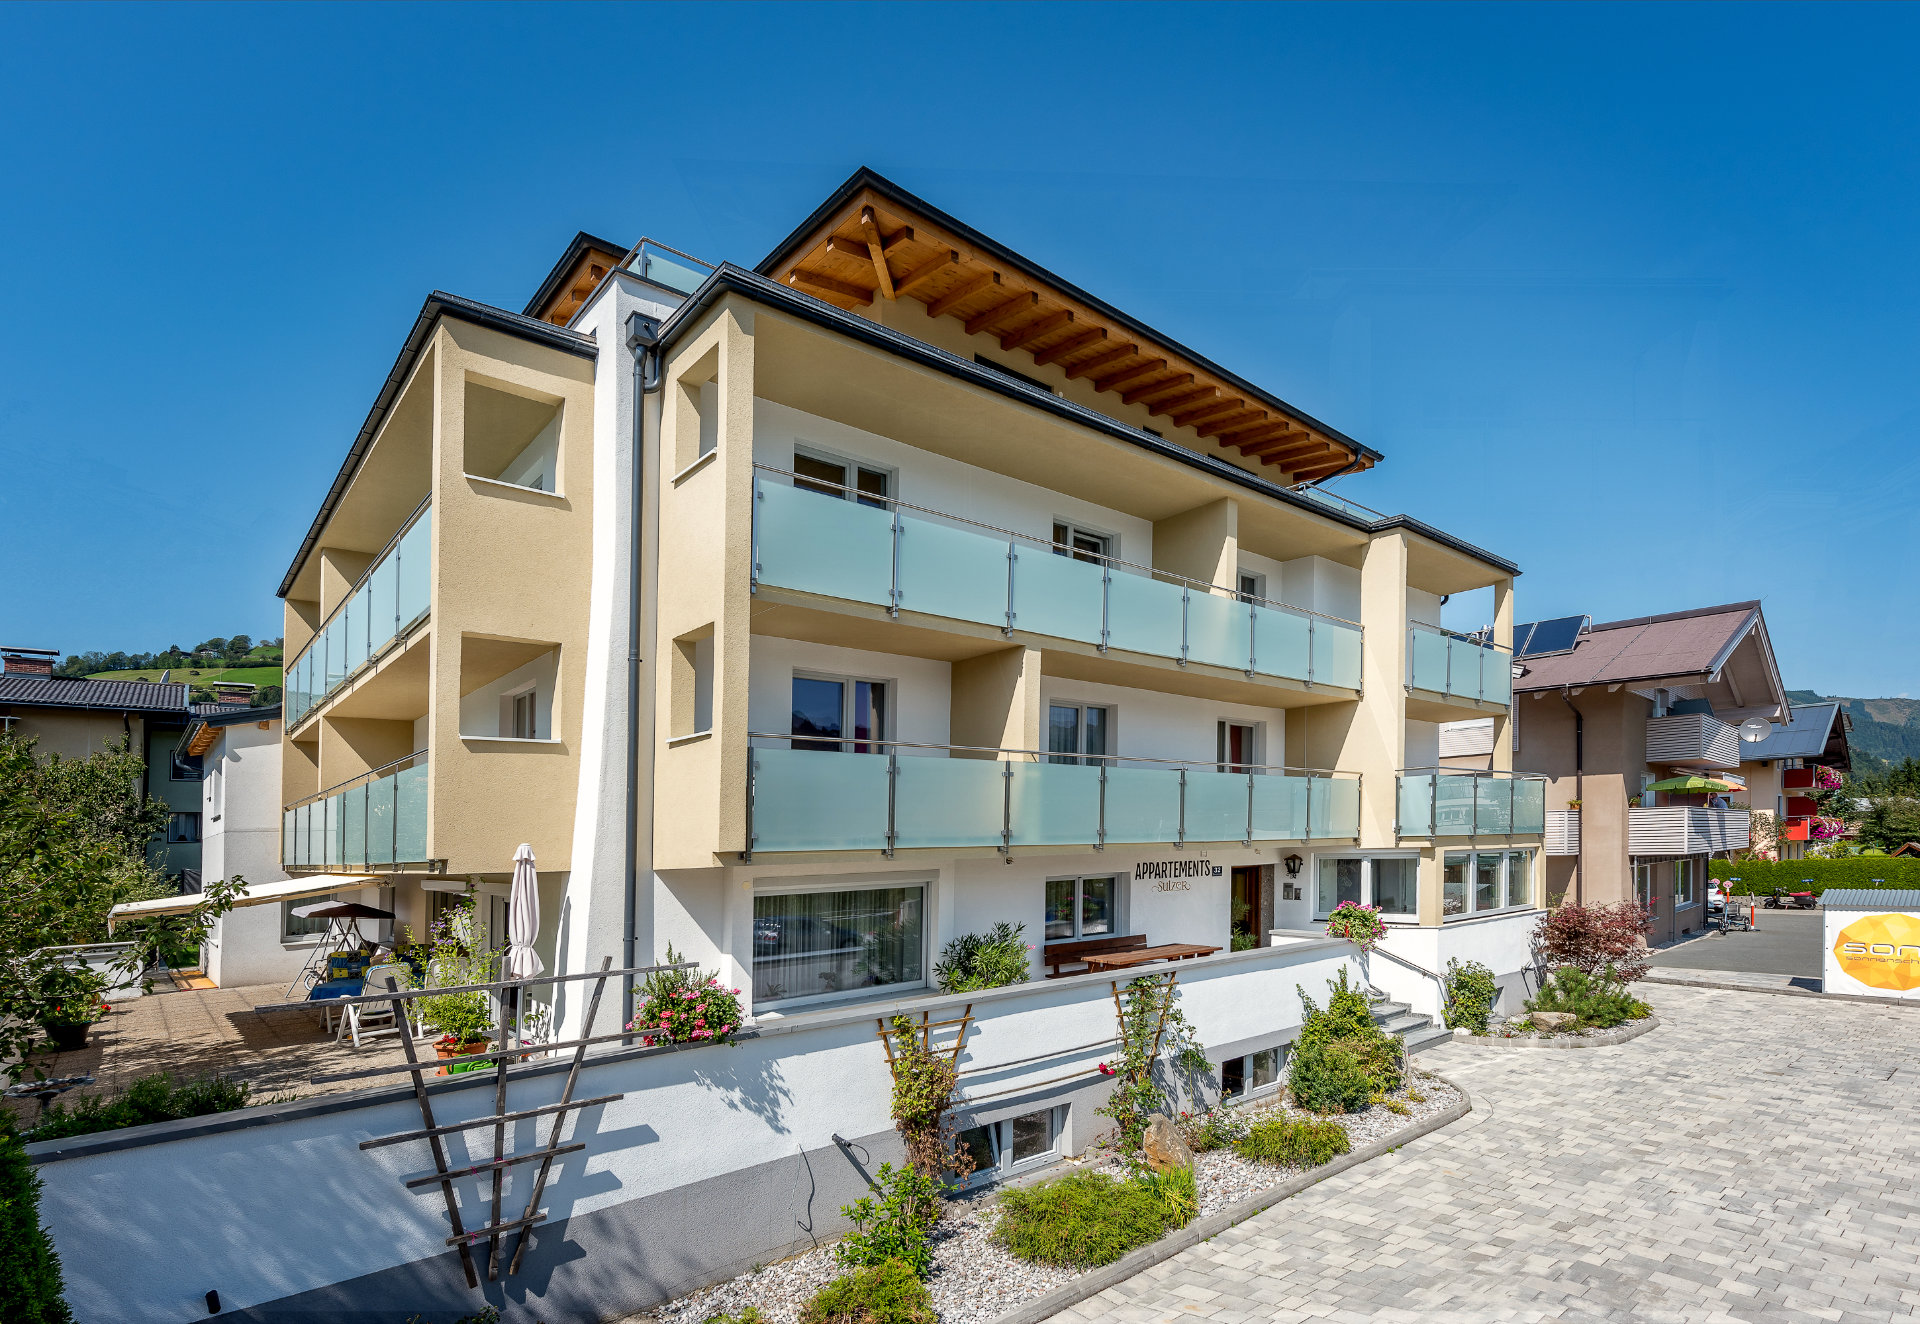 Appartements-Sulzer-Zell-am-See-Sommer-4